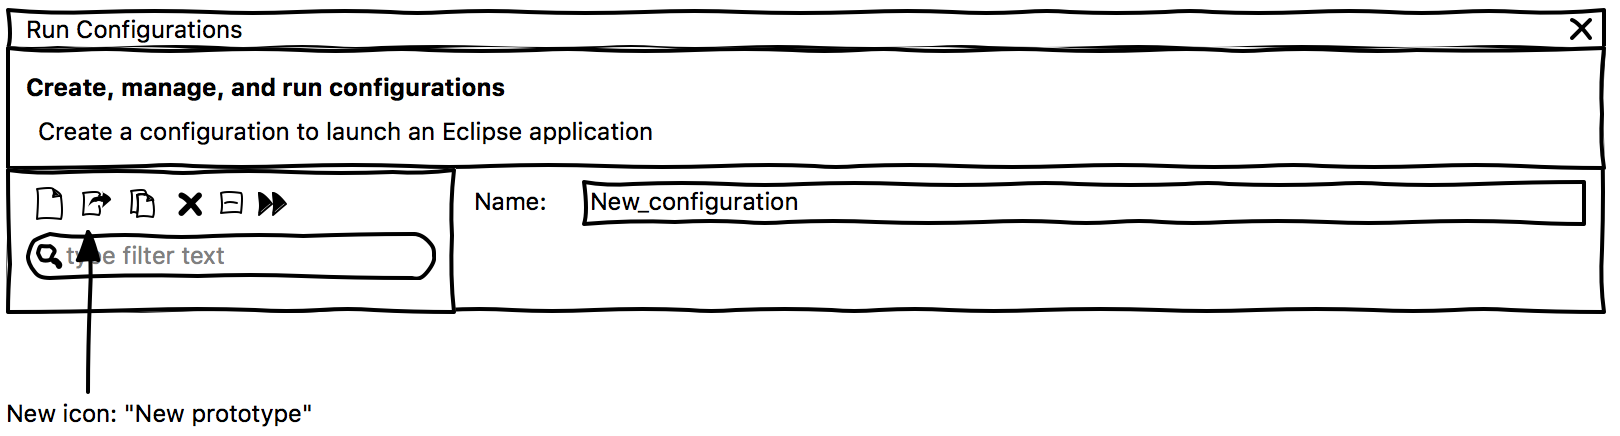 Run Configurations New Template Icon v4.png